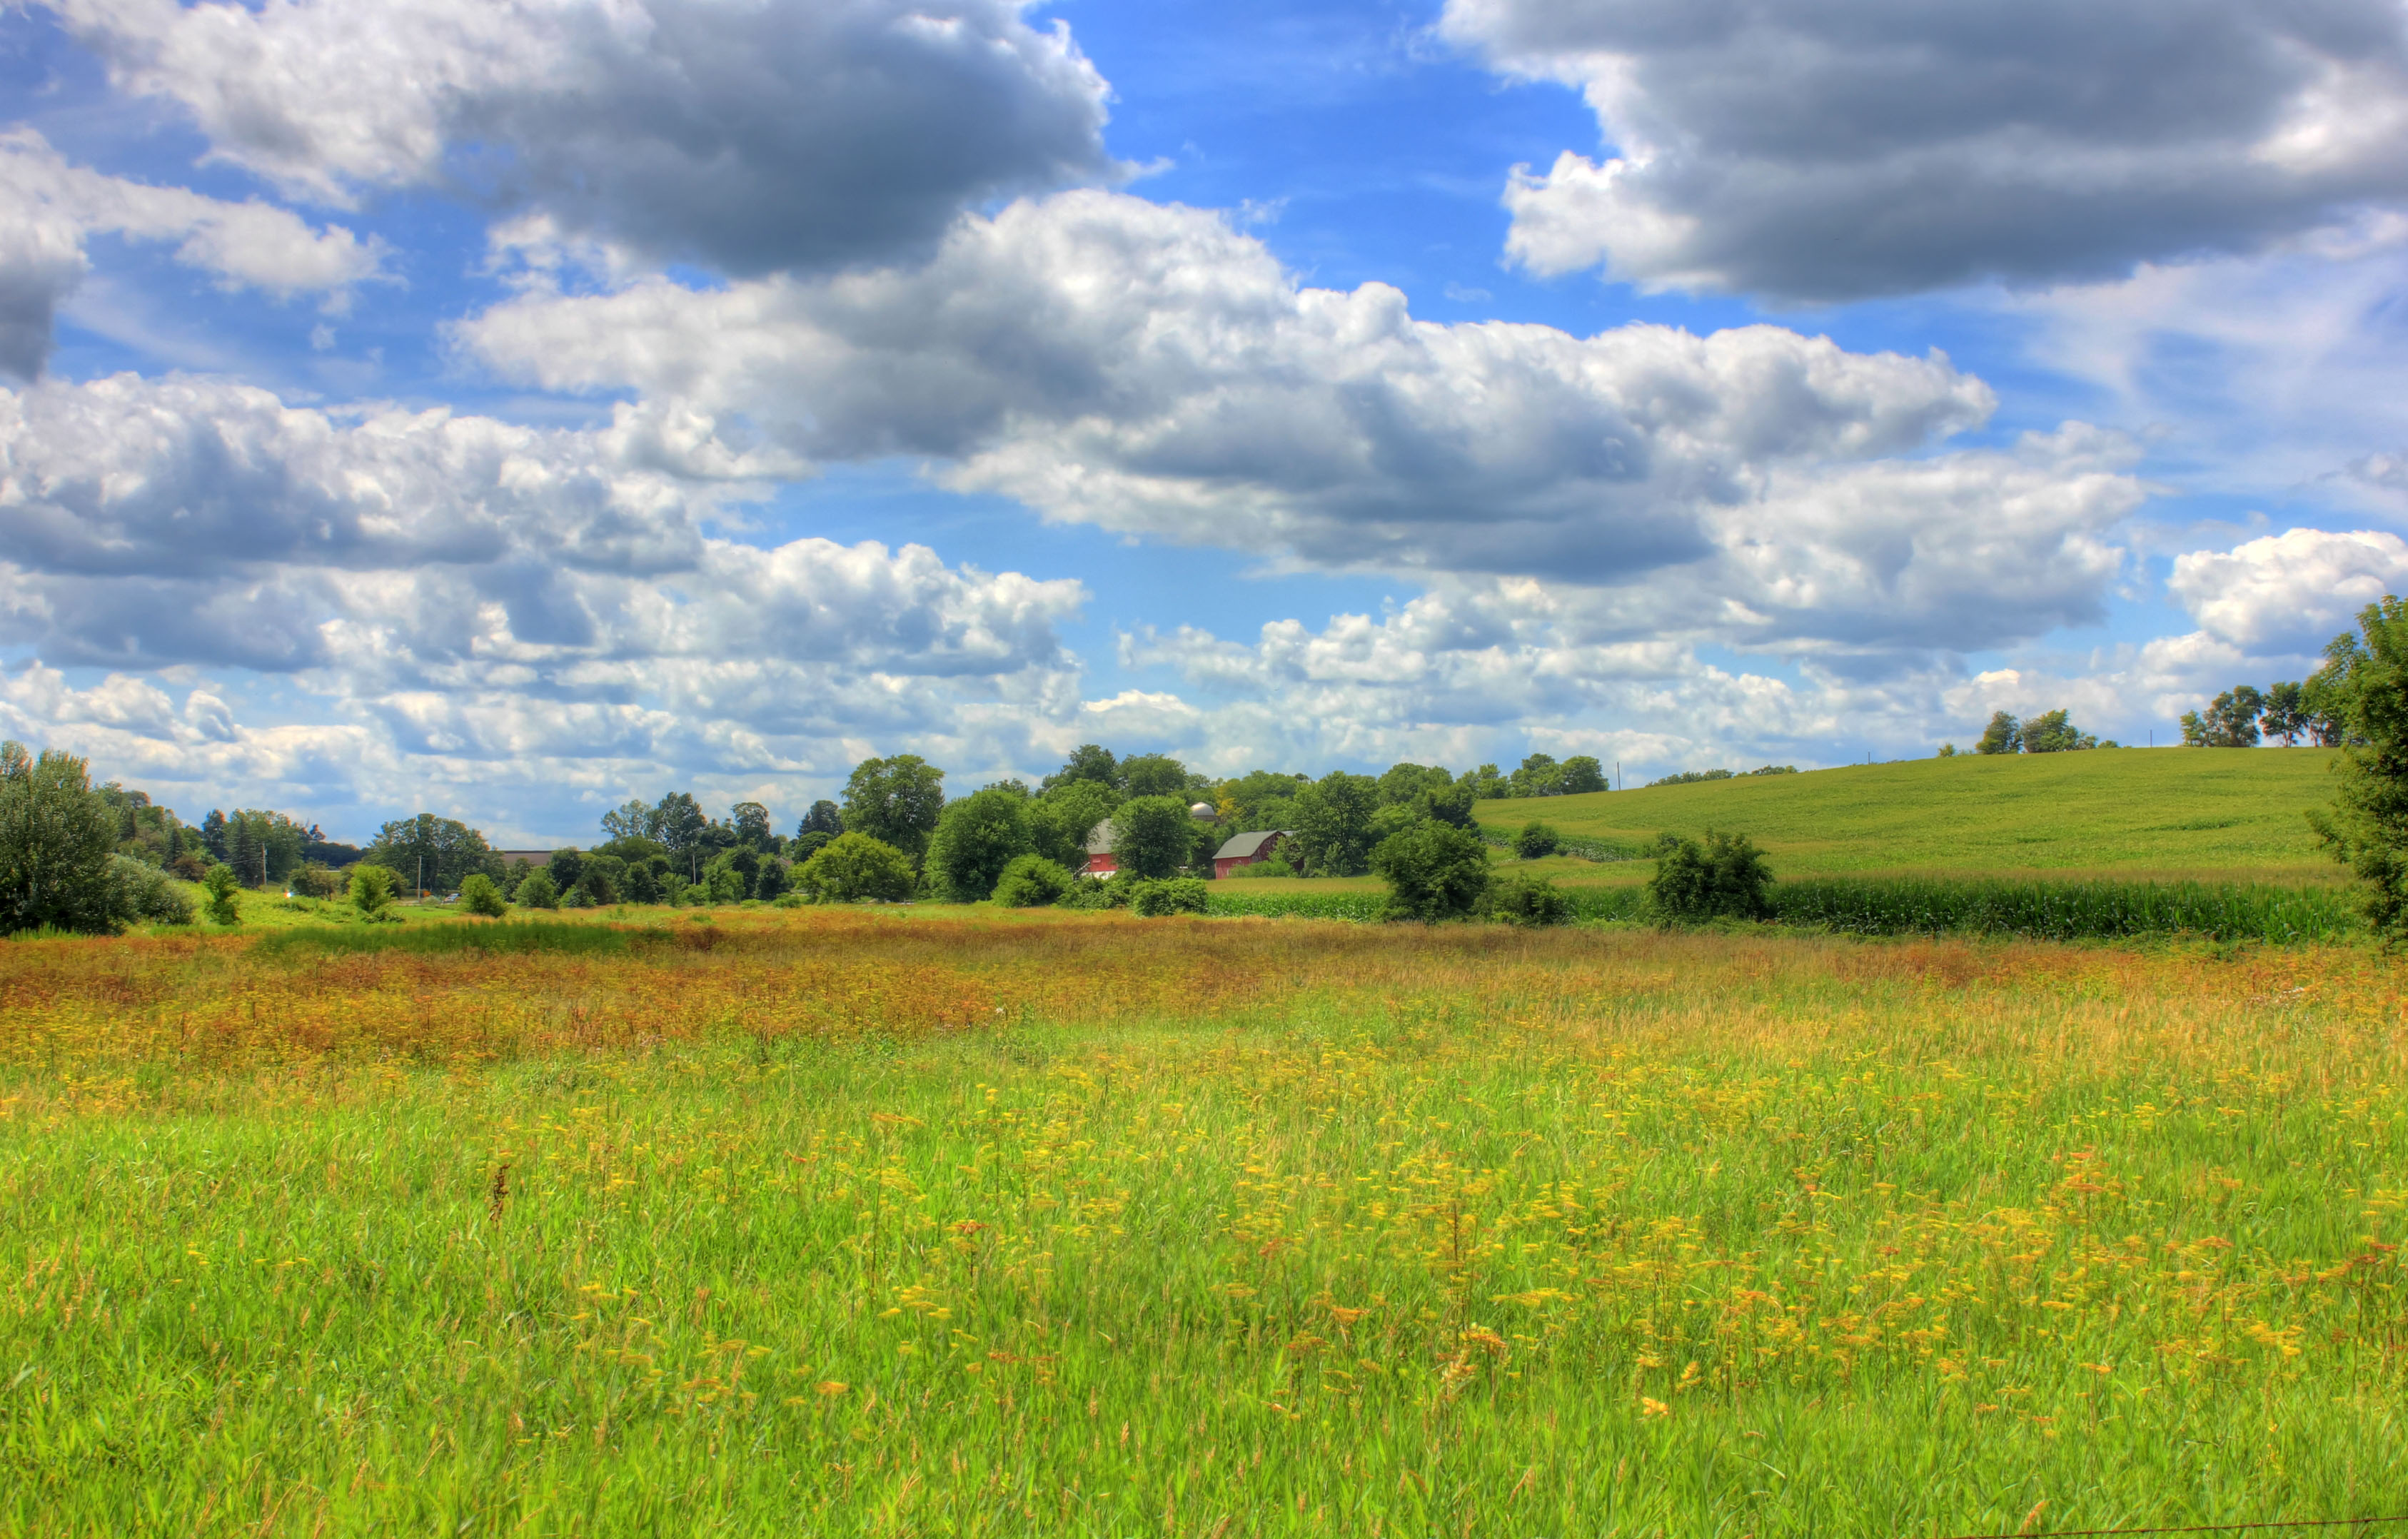 Landscape With Clouds On The Jane Adams Trail Illinois Image Free Stock Photo Public Domain